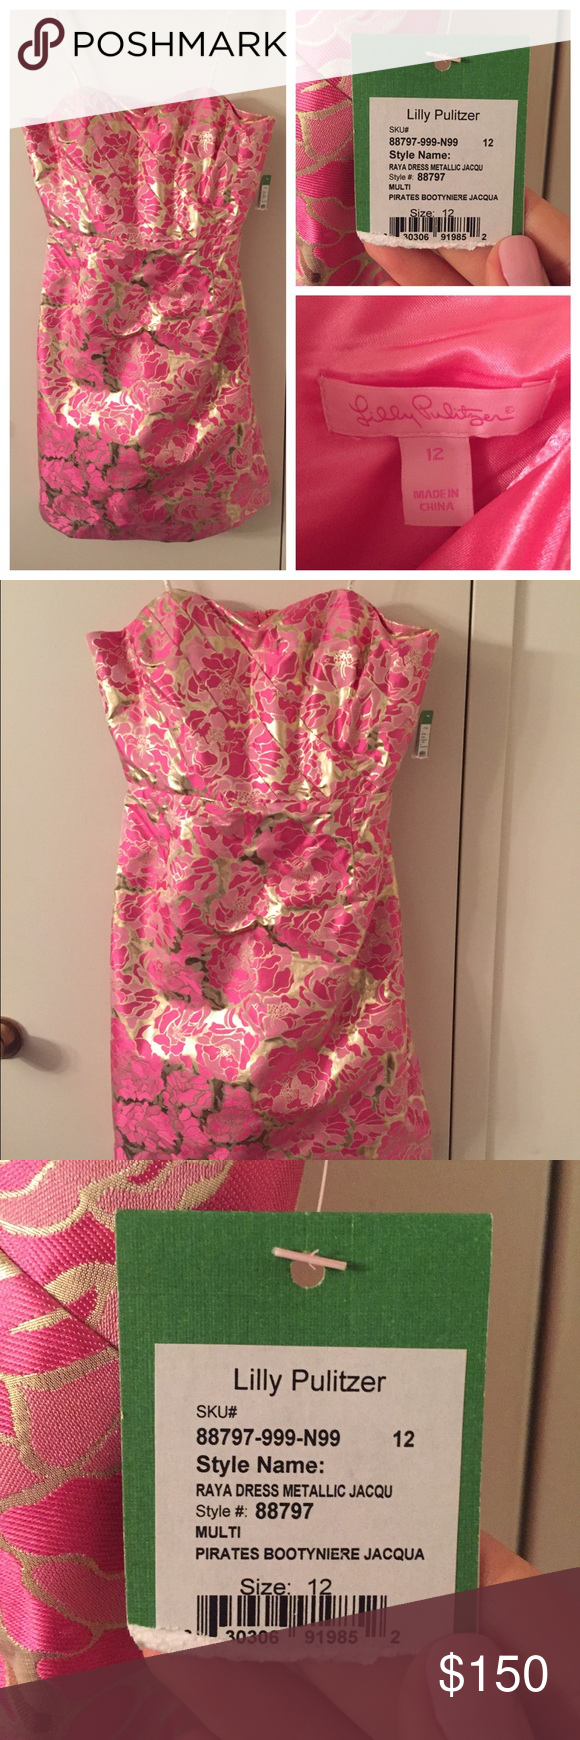 bffa0ada571 Lilly Pulitzer size 12 Raya dress NWT Metallic pink   gold strapless  jacquard party dress in Pirate s Bootyniere print. Size 12.